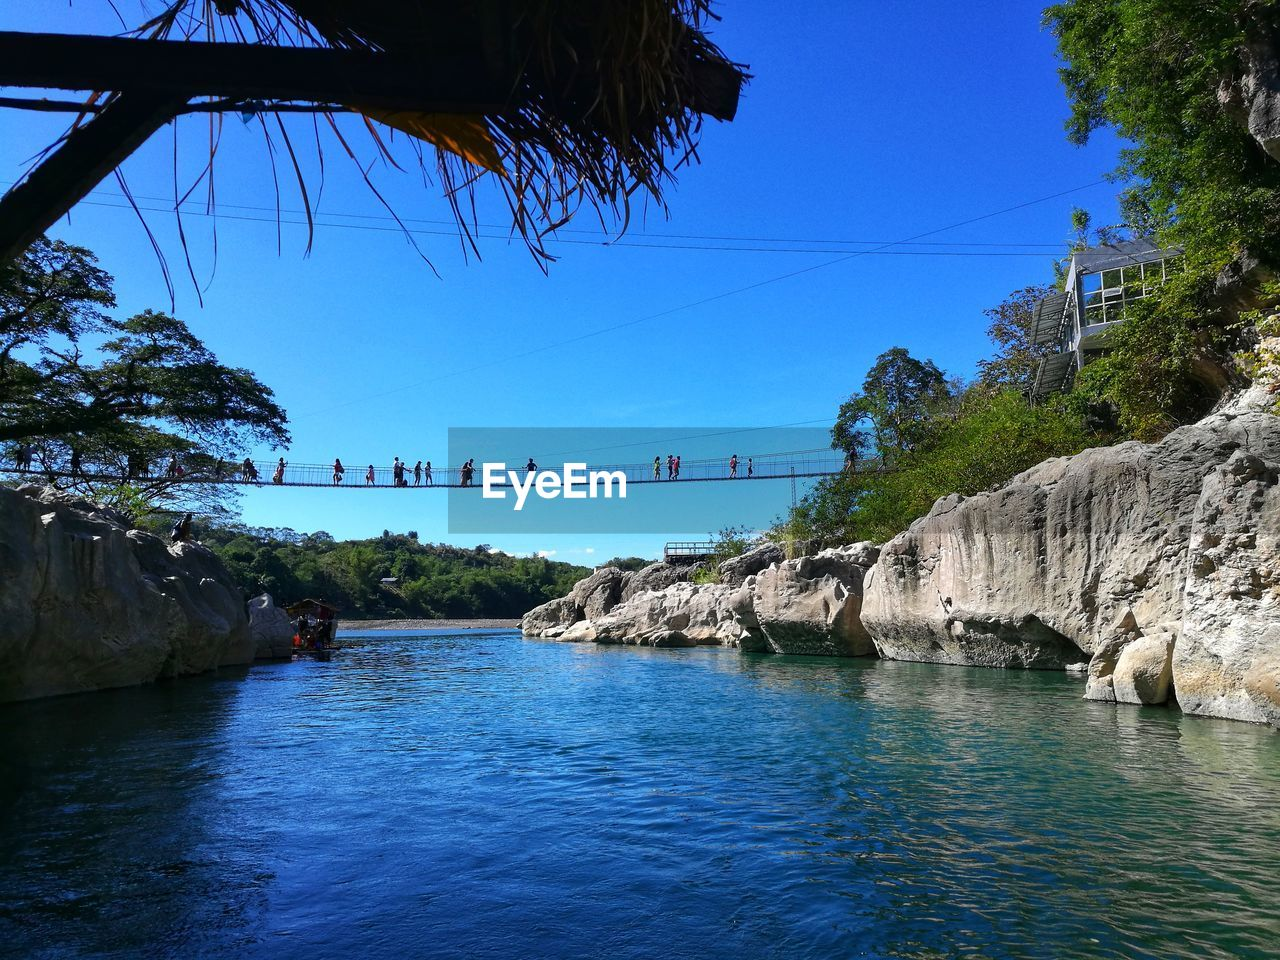 water, sky, tree, nature, waterfront, architecture, day, plant, connection, built structure, bridge, scenics - nature, blue, rock, beauty in nature, river, rock - object, tranquility, bridge - man made structure, no people, outdoors, flowing water